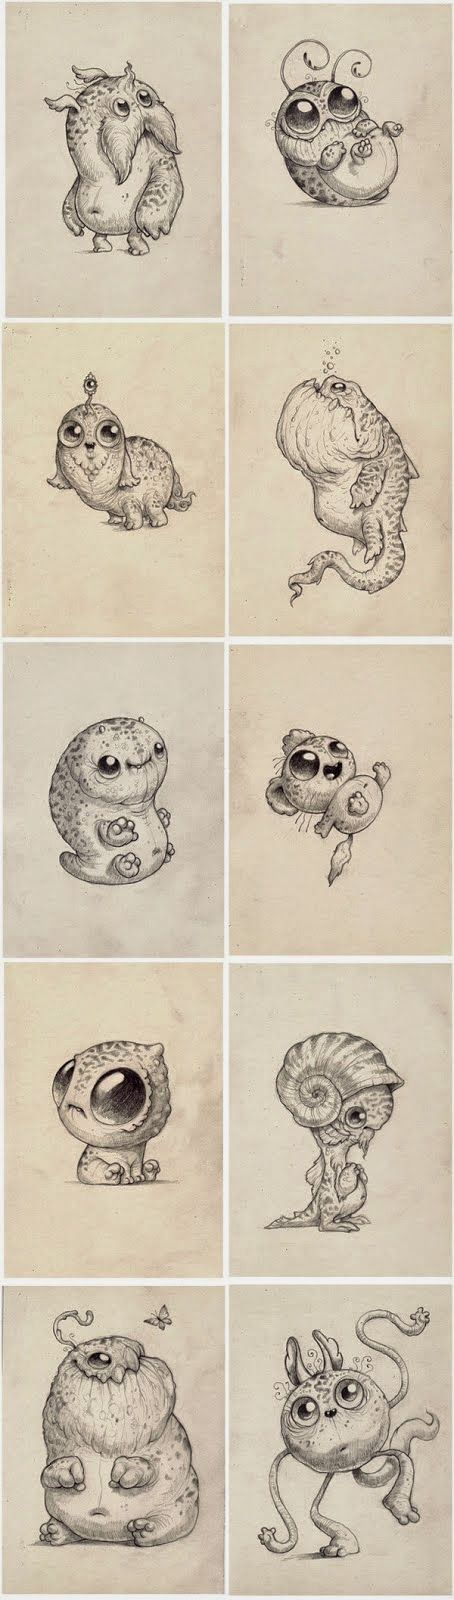 Baby monsters by Chris Ryniak | http://chrisryniak.tumblr.com/